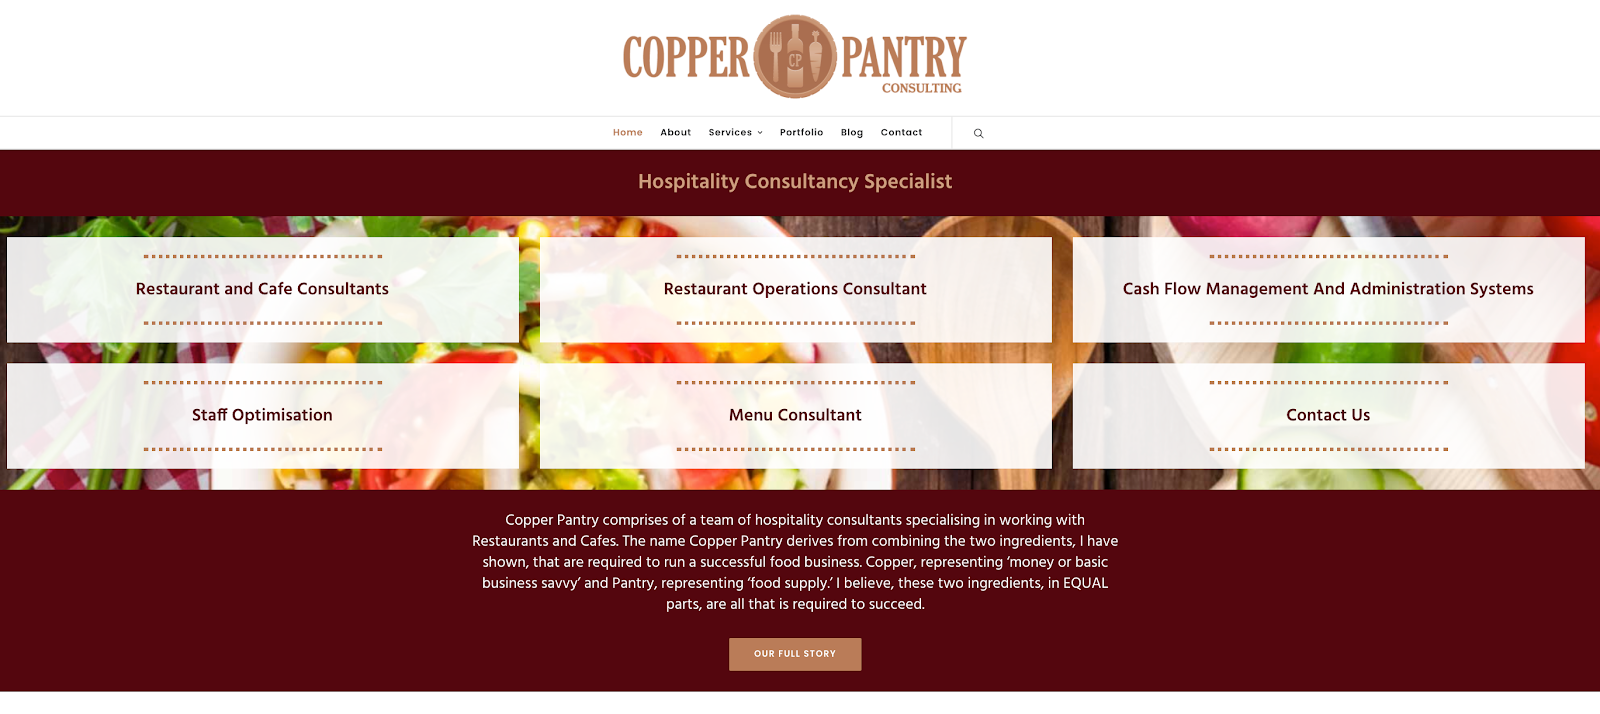 Copper Pantry Consulting service page example